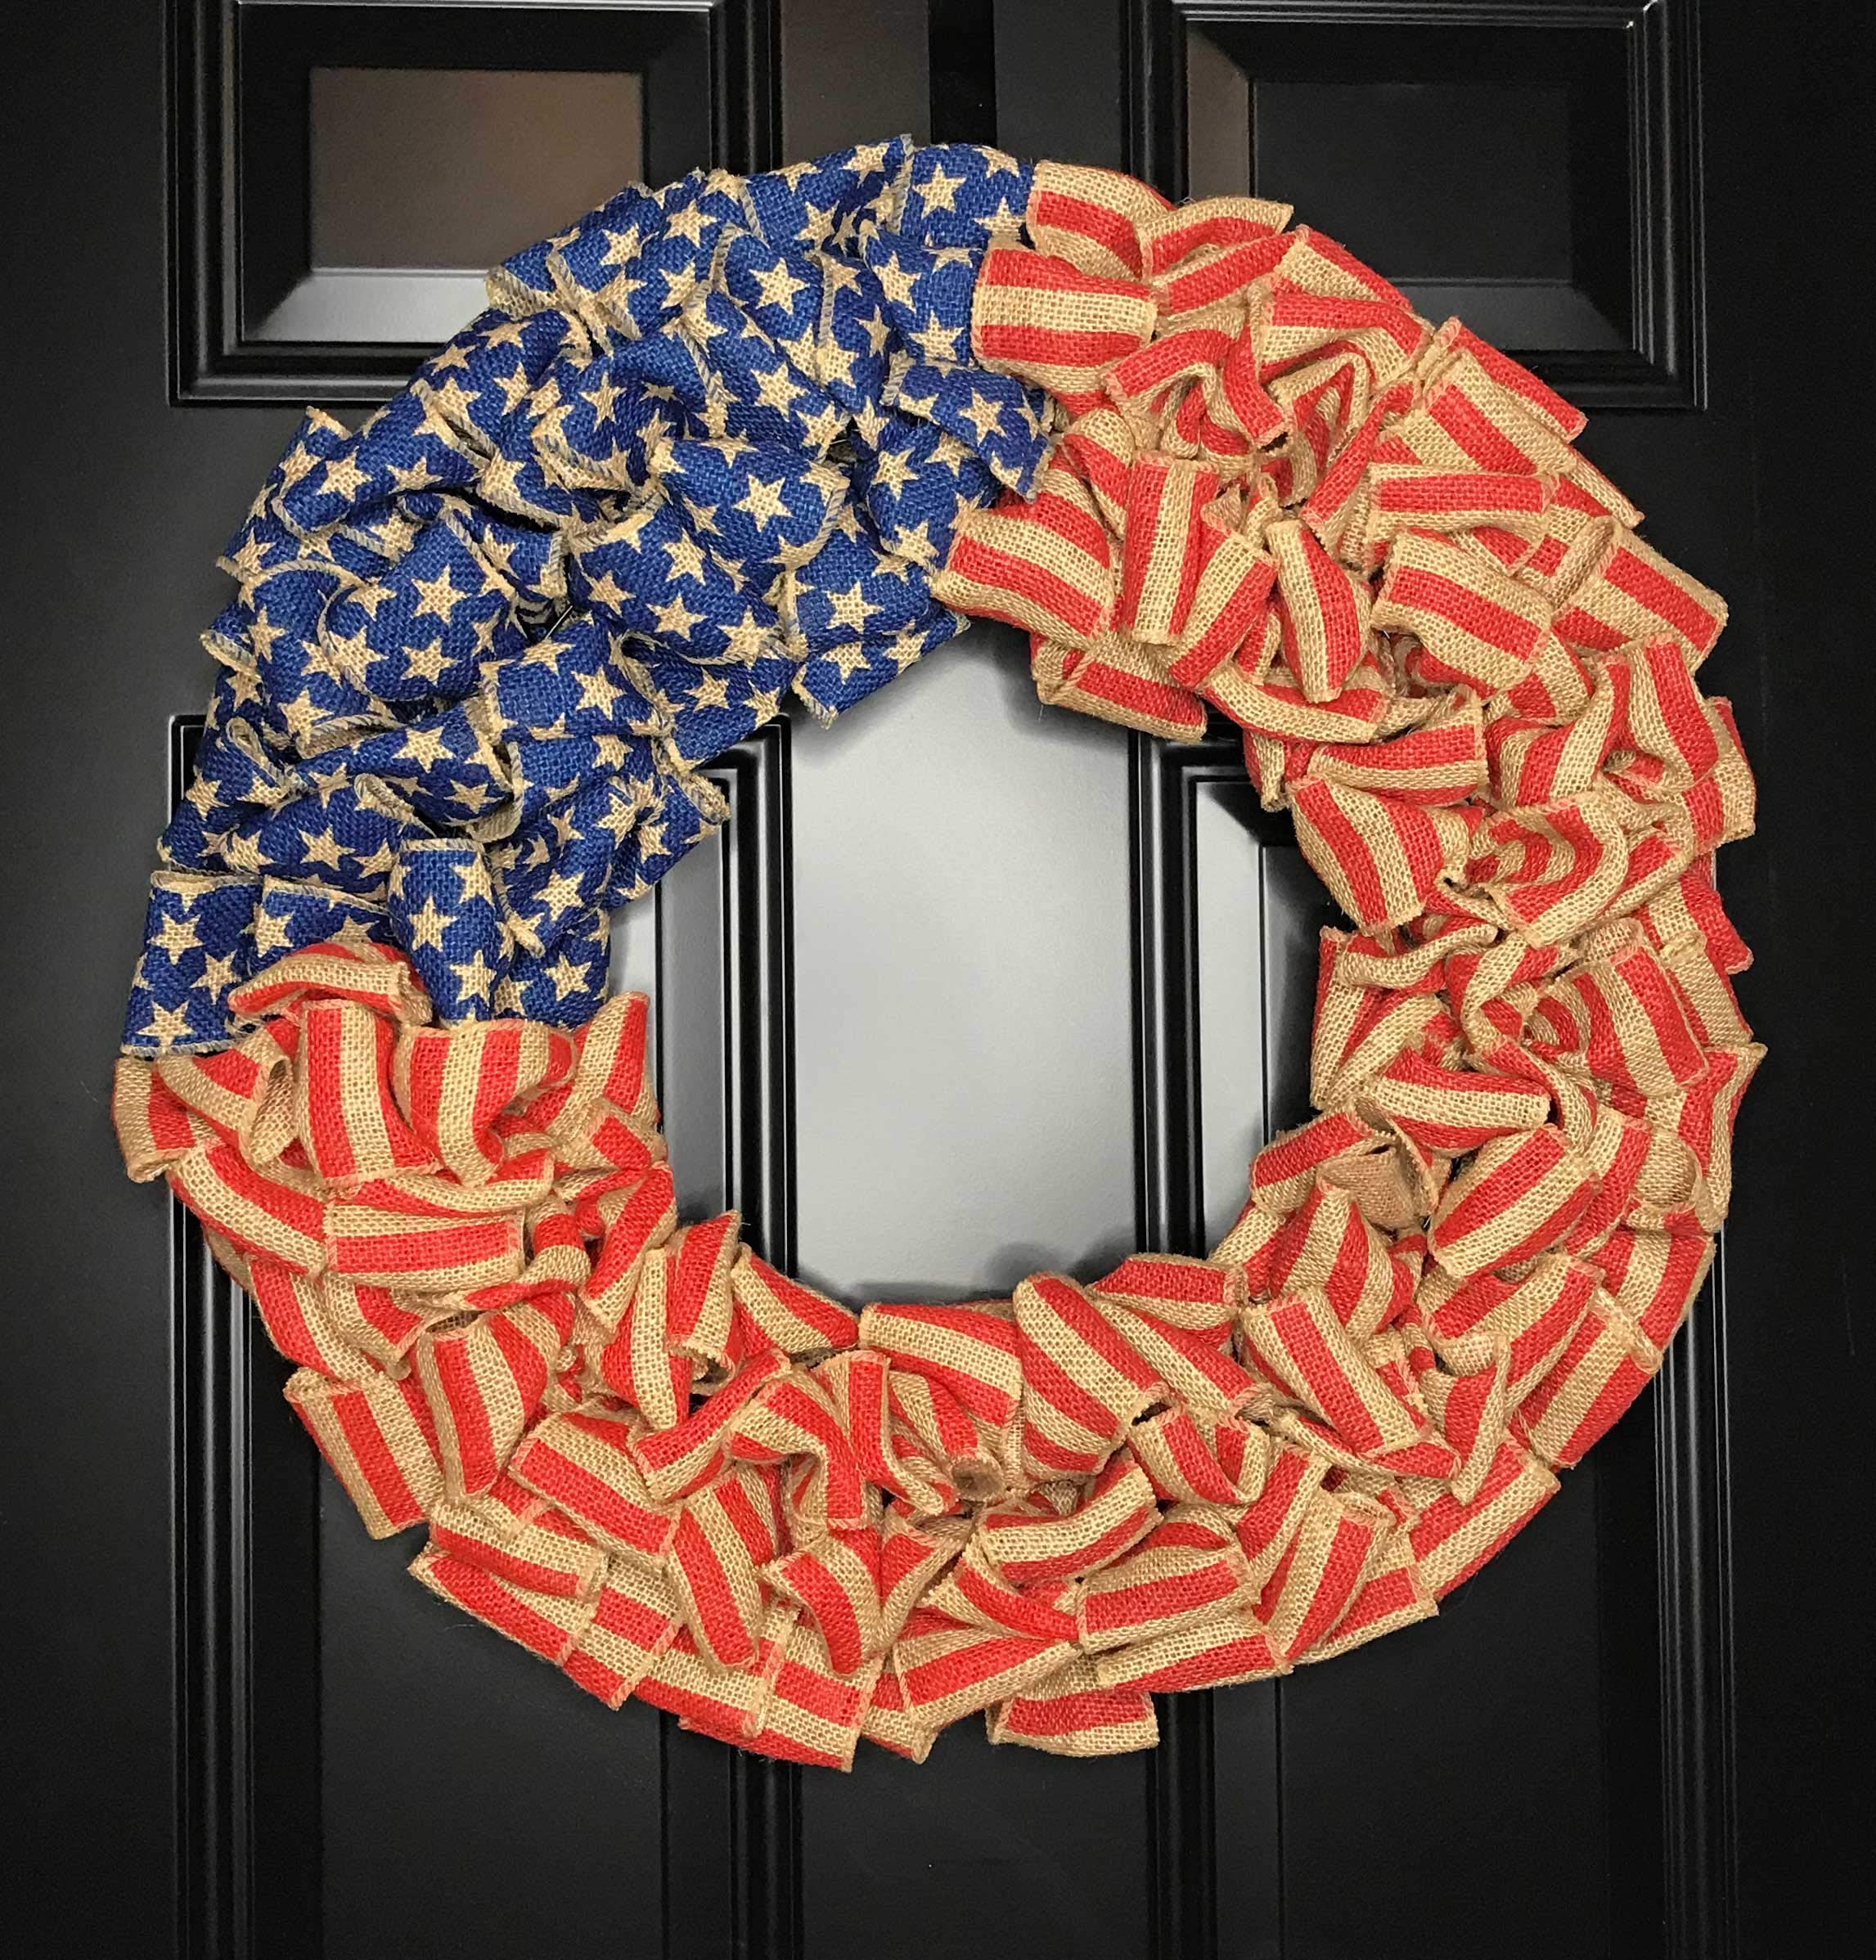 Patriotic-USA-American-Flag-Wreath-for-Front-Door-Porch-Memorial-Day-July-4th-Veterans-Labor-Day-Indoor-Outdoor-Summer-Americana-Home-Decor-Burlap-Red-White-and-Blue-Handmade-Choose-20-or-24